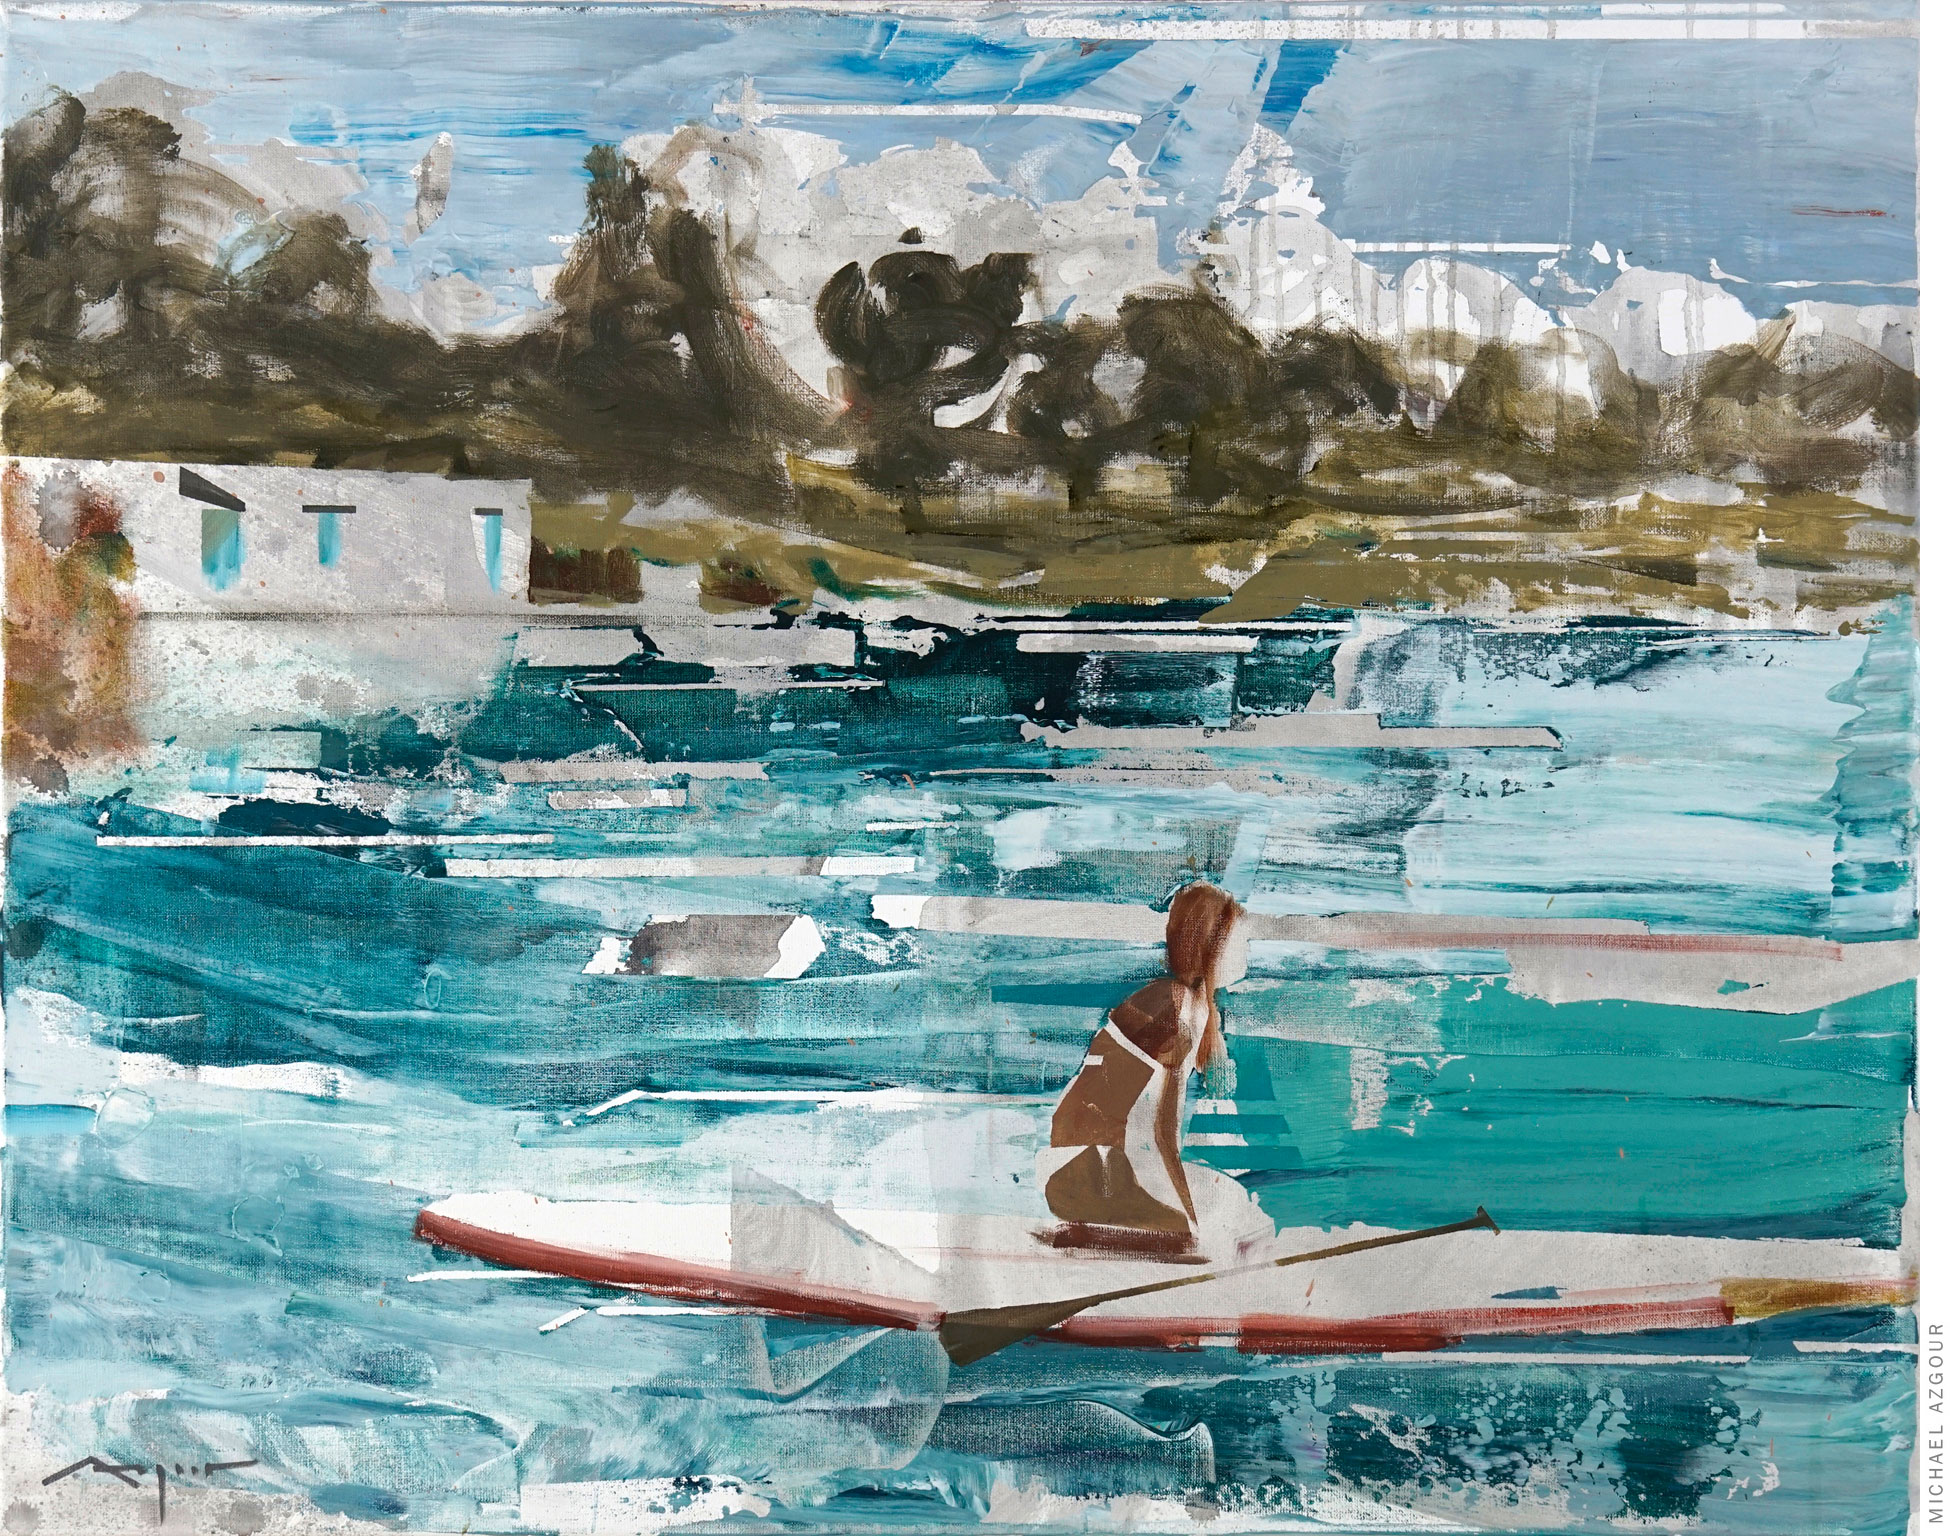 Painting depicting a female figure on a paddleboard in a seascape setting. Artwork titled Girl on a Paddleboard